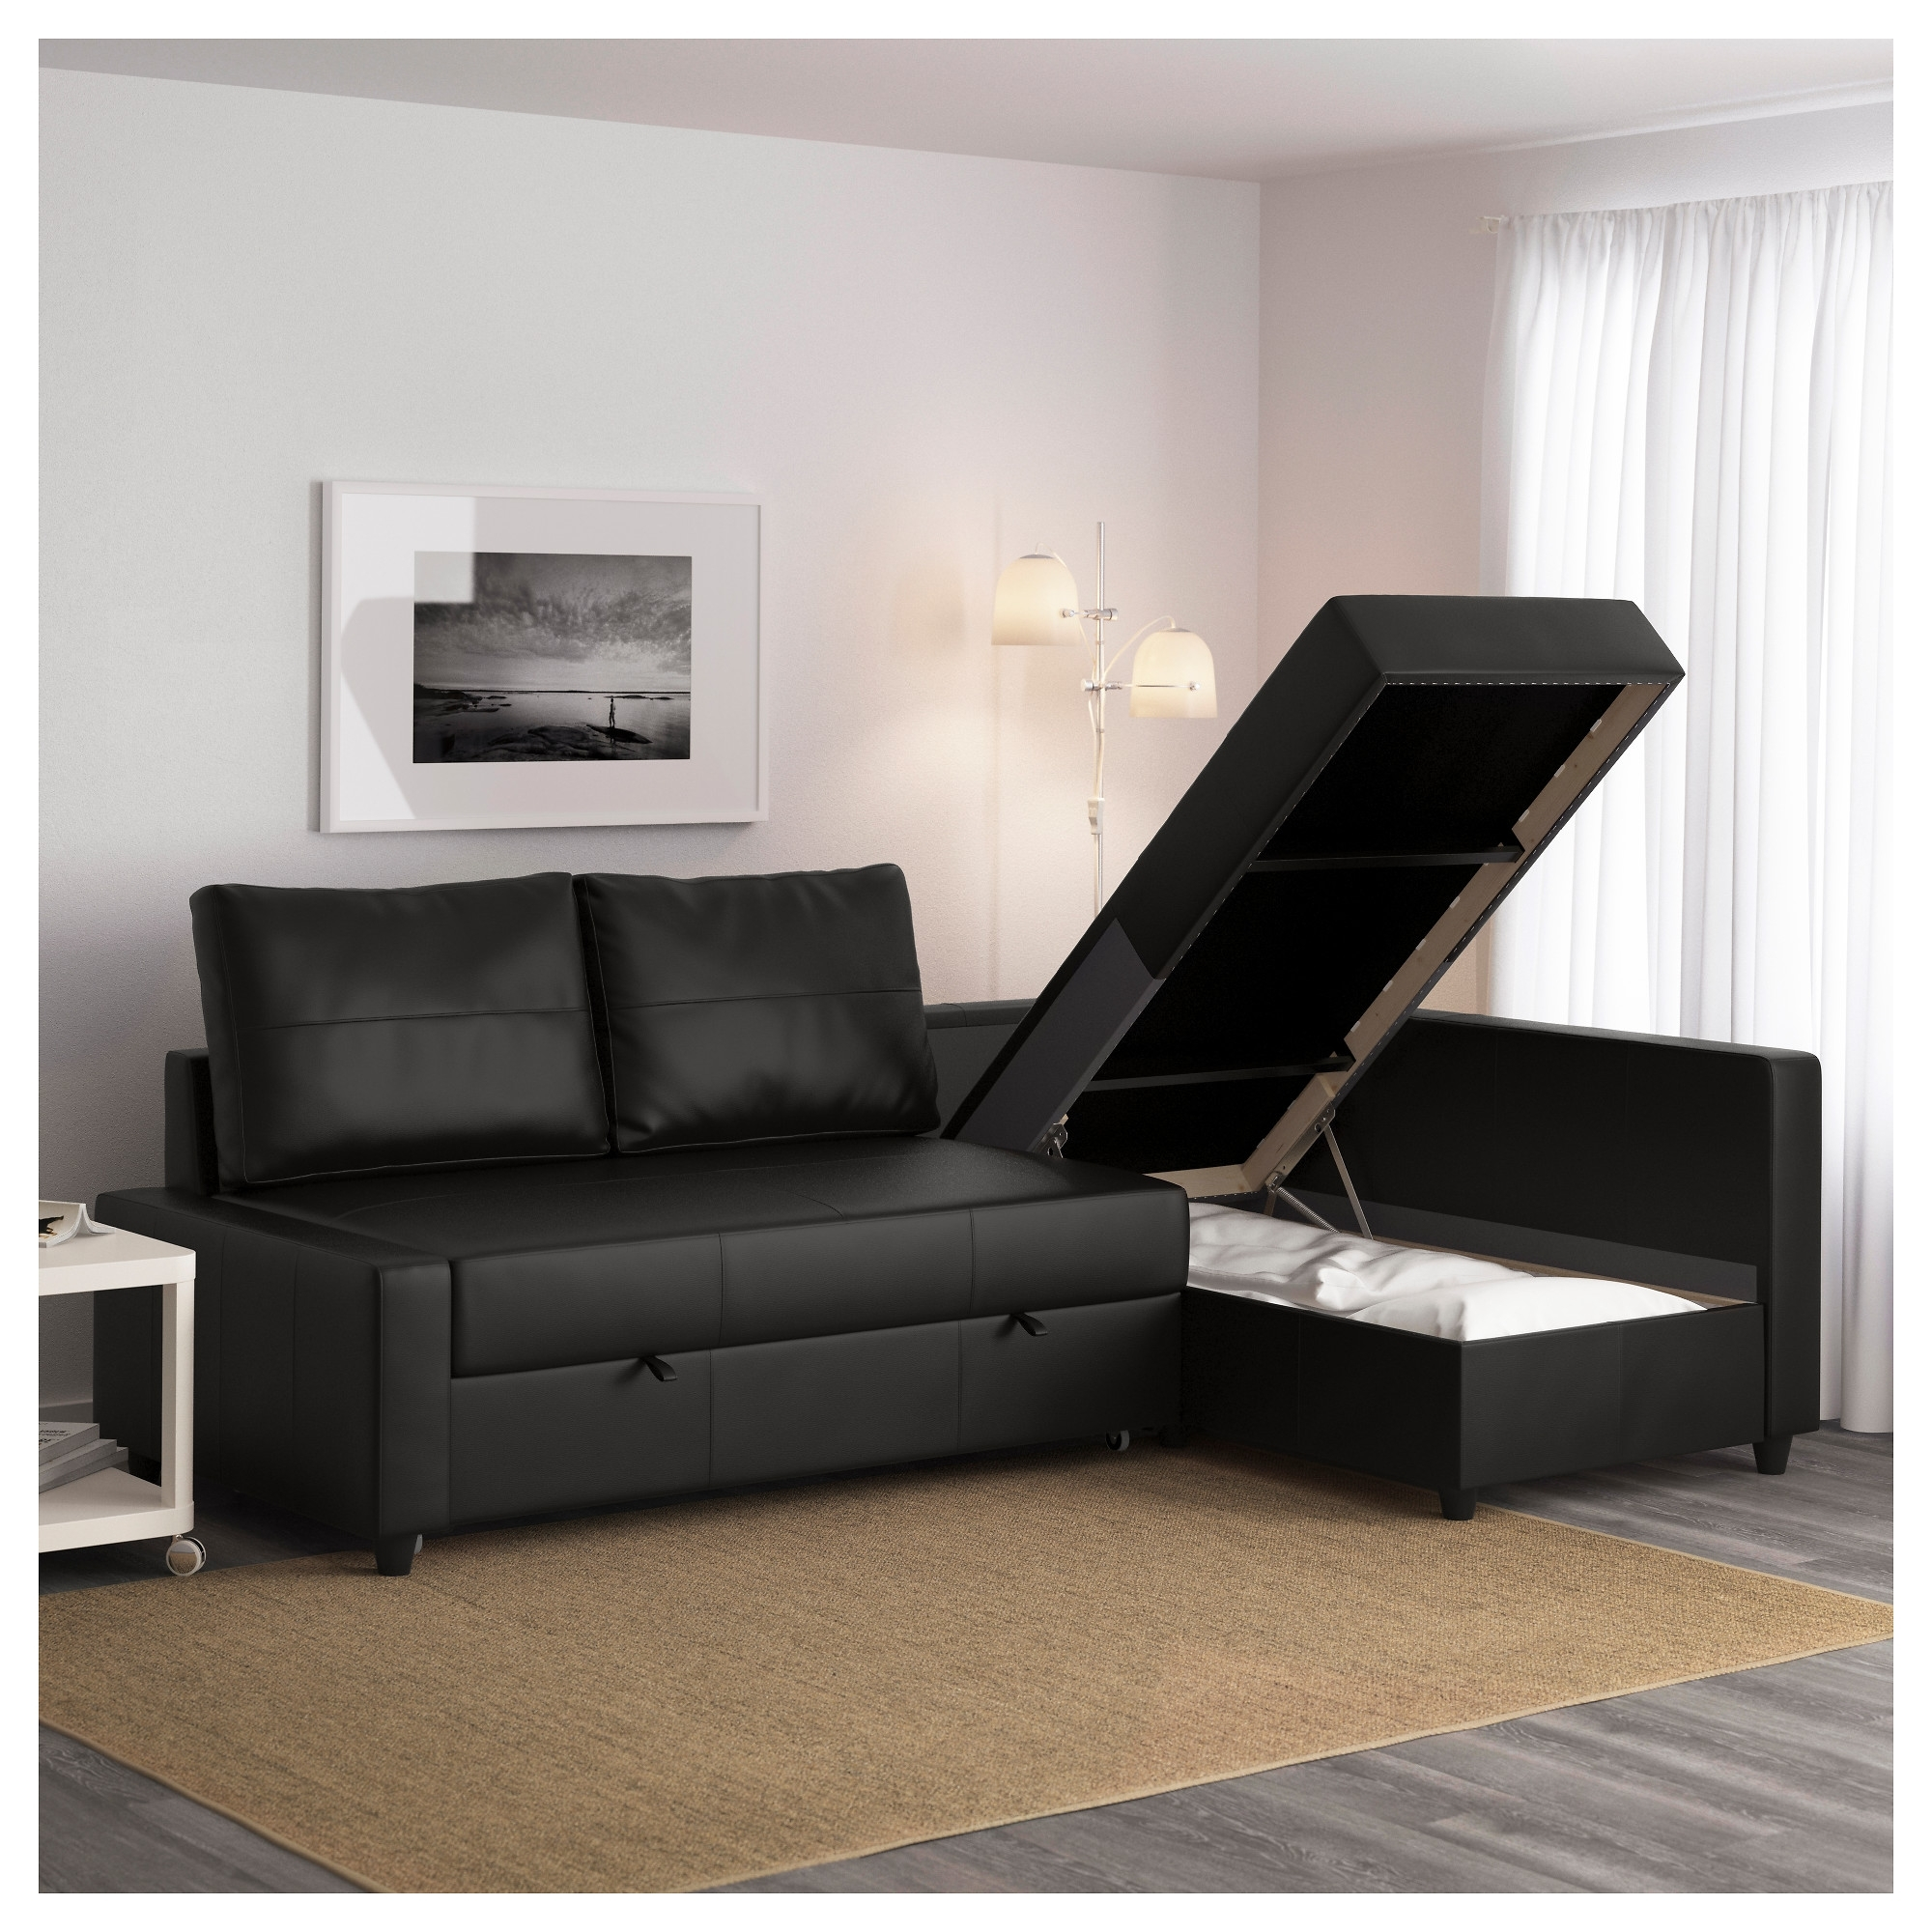 Most Recent Friheten Sleeper Sectional,3 Seat W/storage – Skiftebo Dark Gray Intended For Storage Sofas (View 2 of 20)